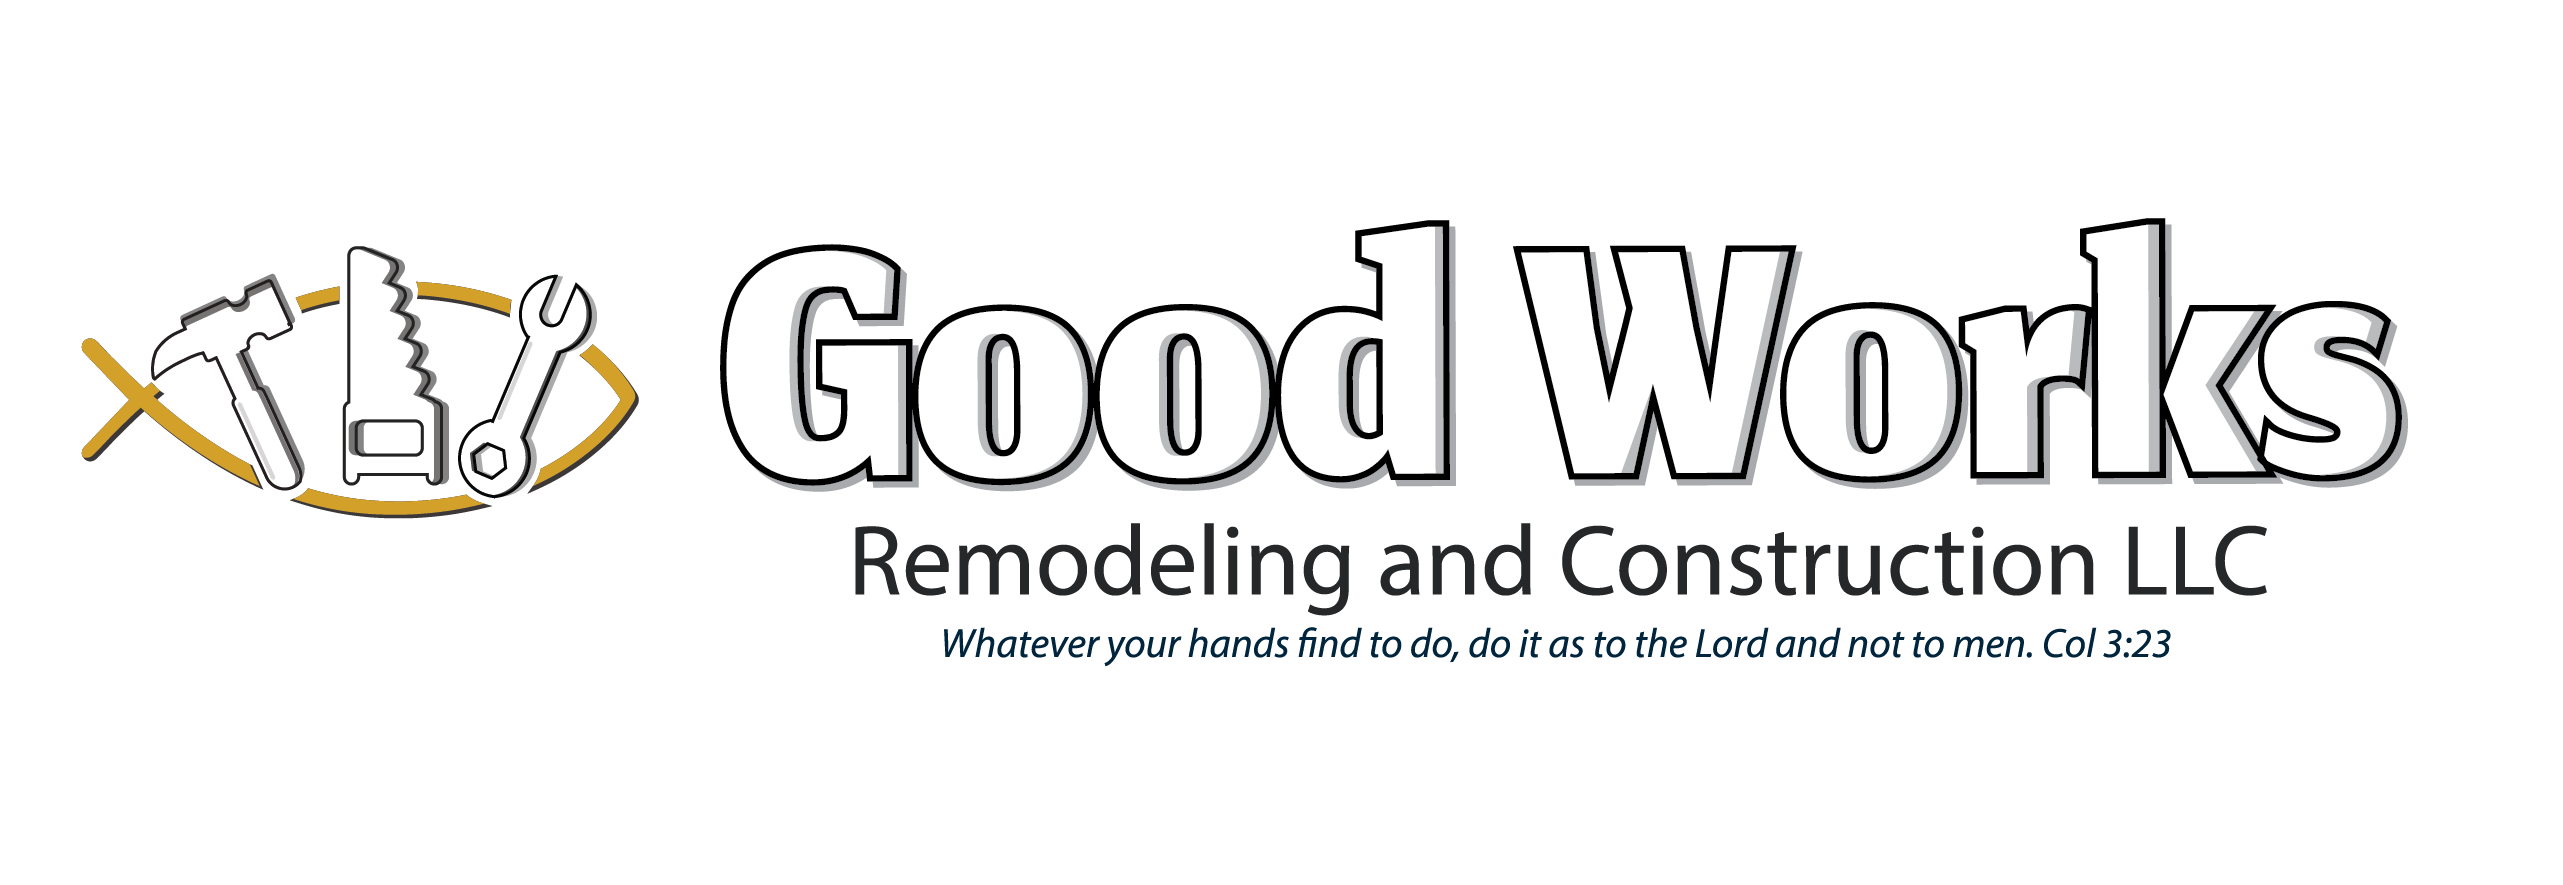 Good Works Remodeling & Construction, LLC Logo